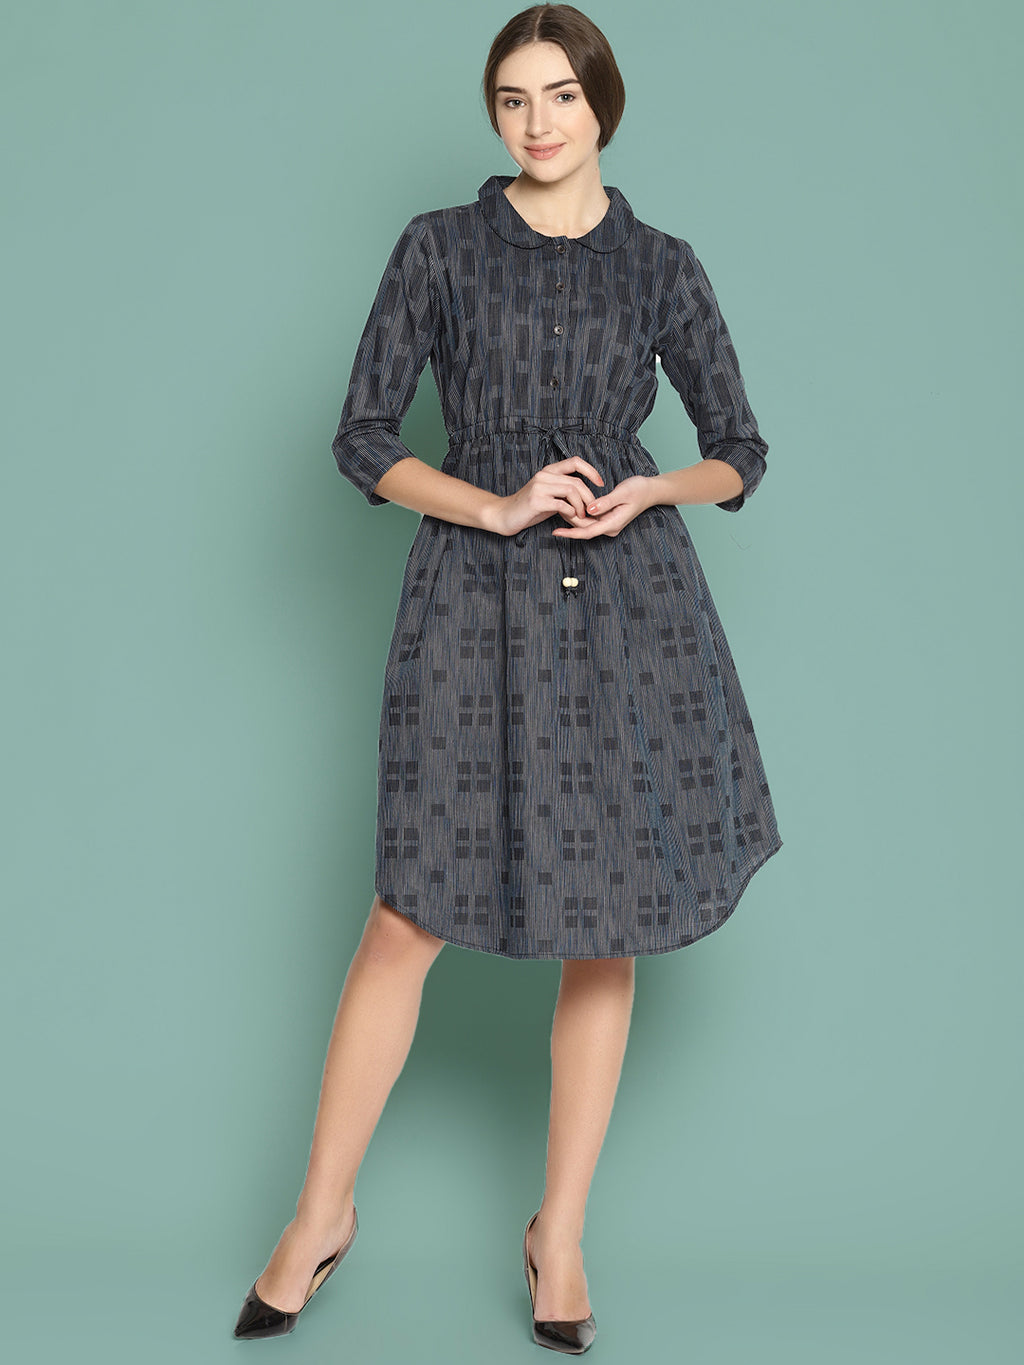 Grey Woven Dress With Peter Pan Collar | Untung